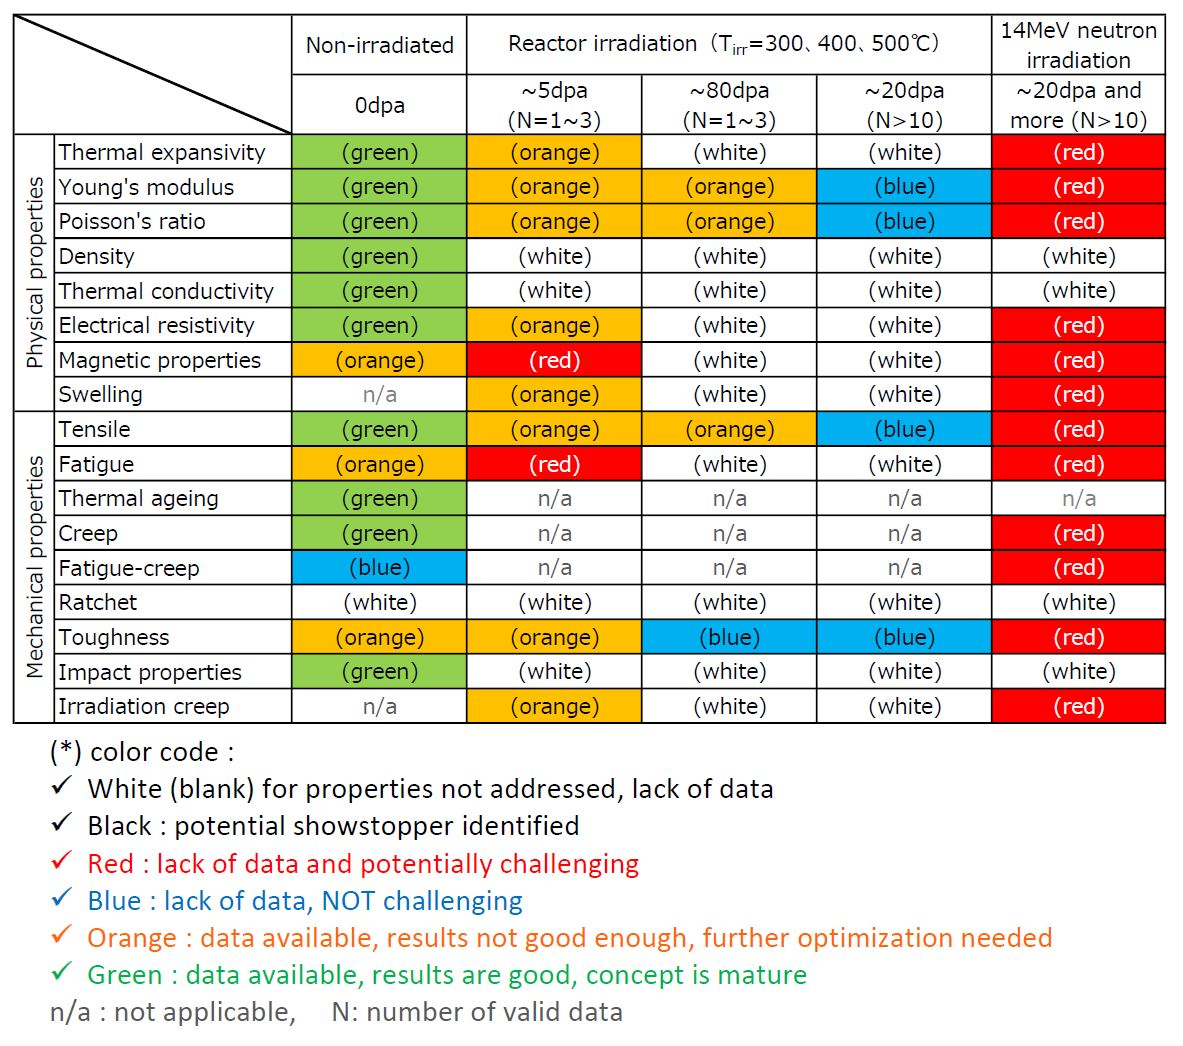 Evaluation summary of material properties of F82H by attribute guides. Note that no showstopper (black) was identified in the initial evaluation.